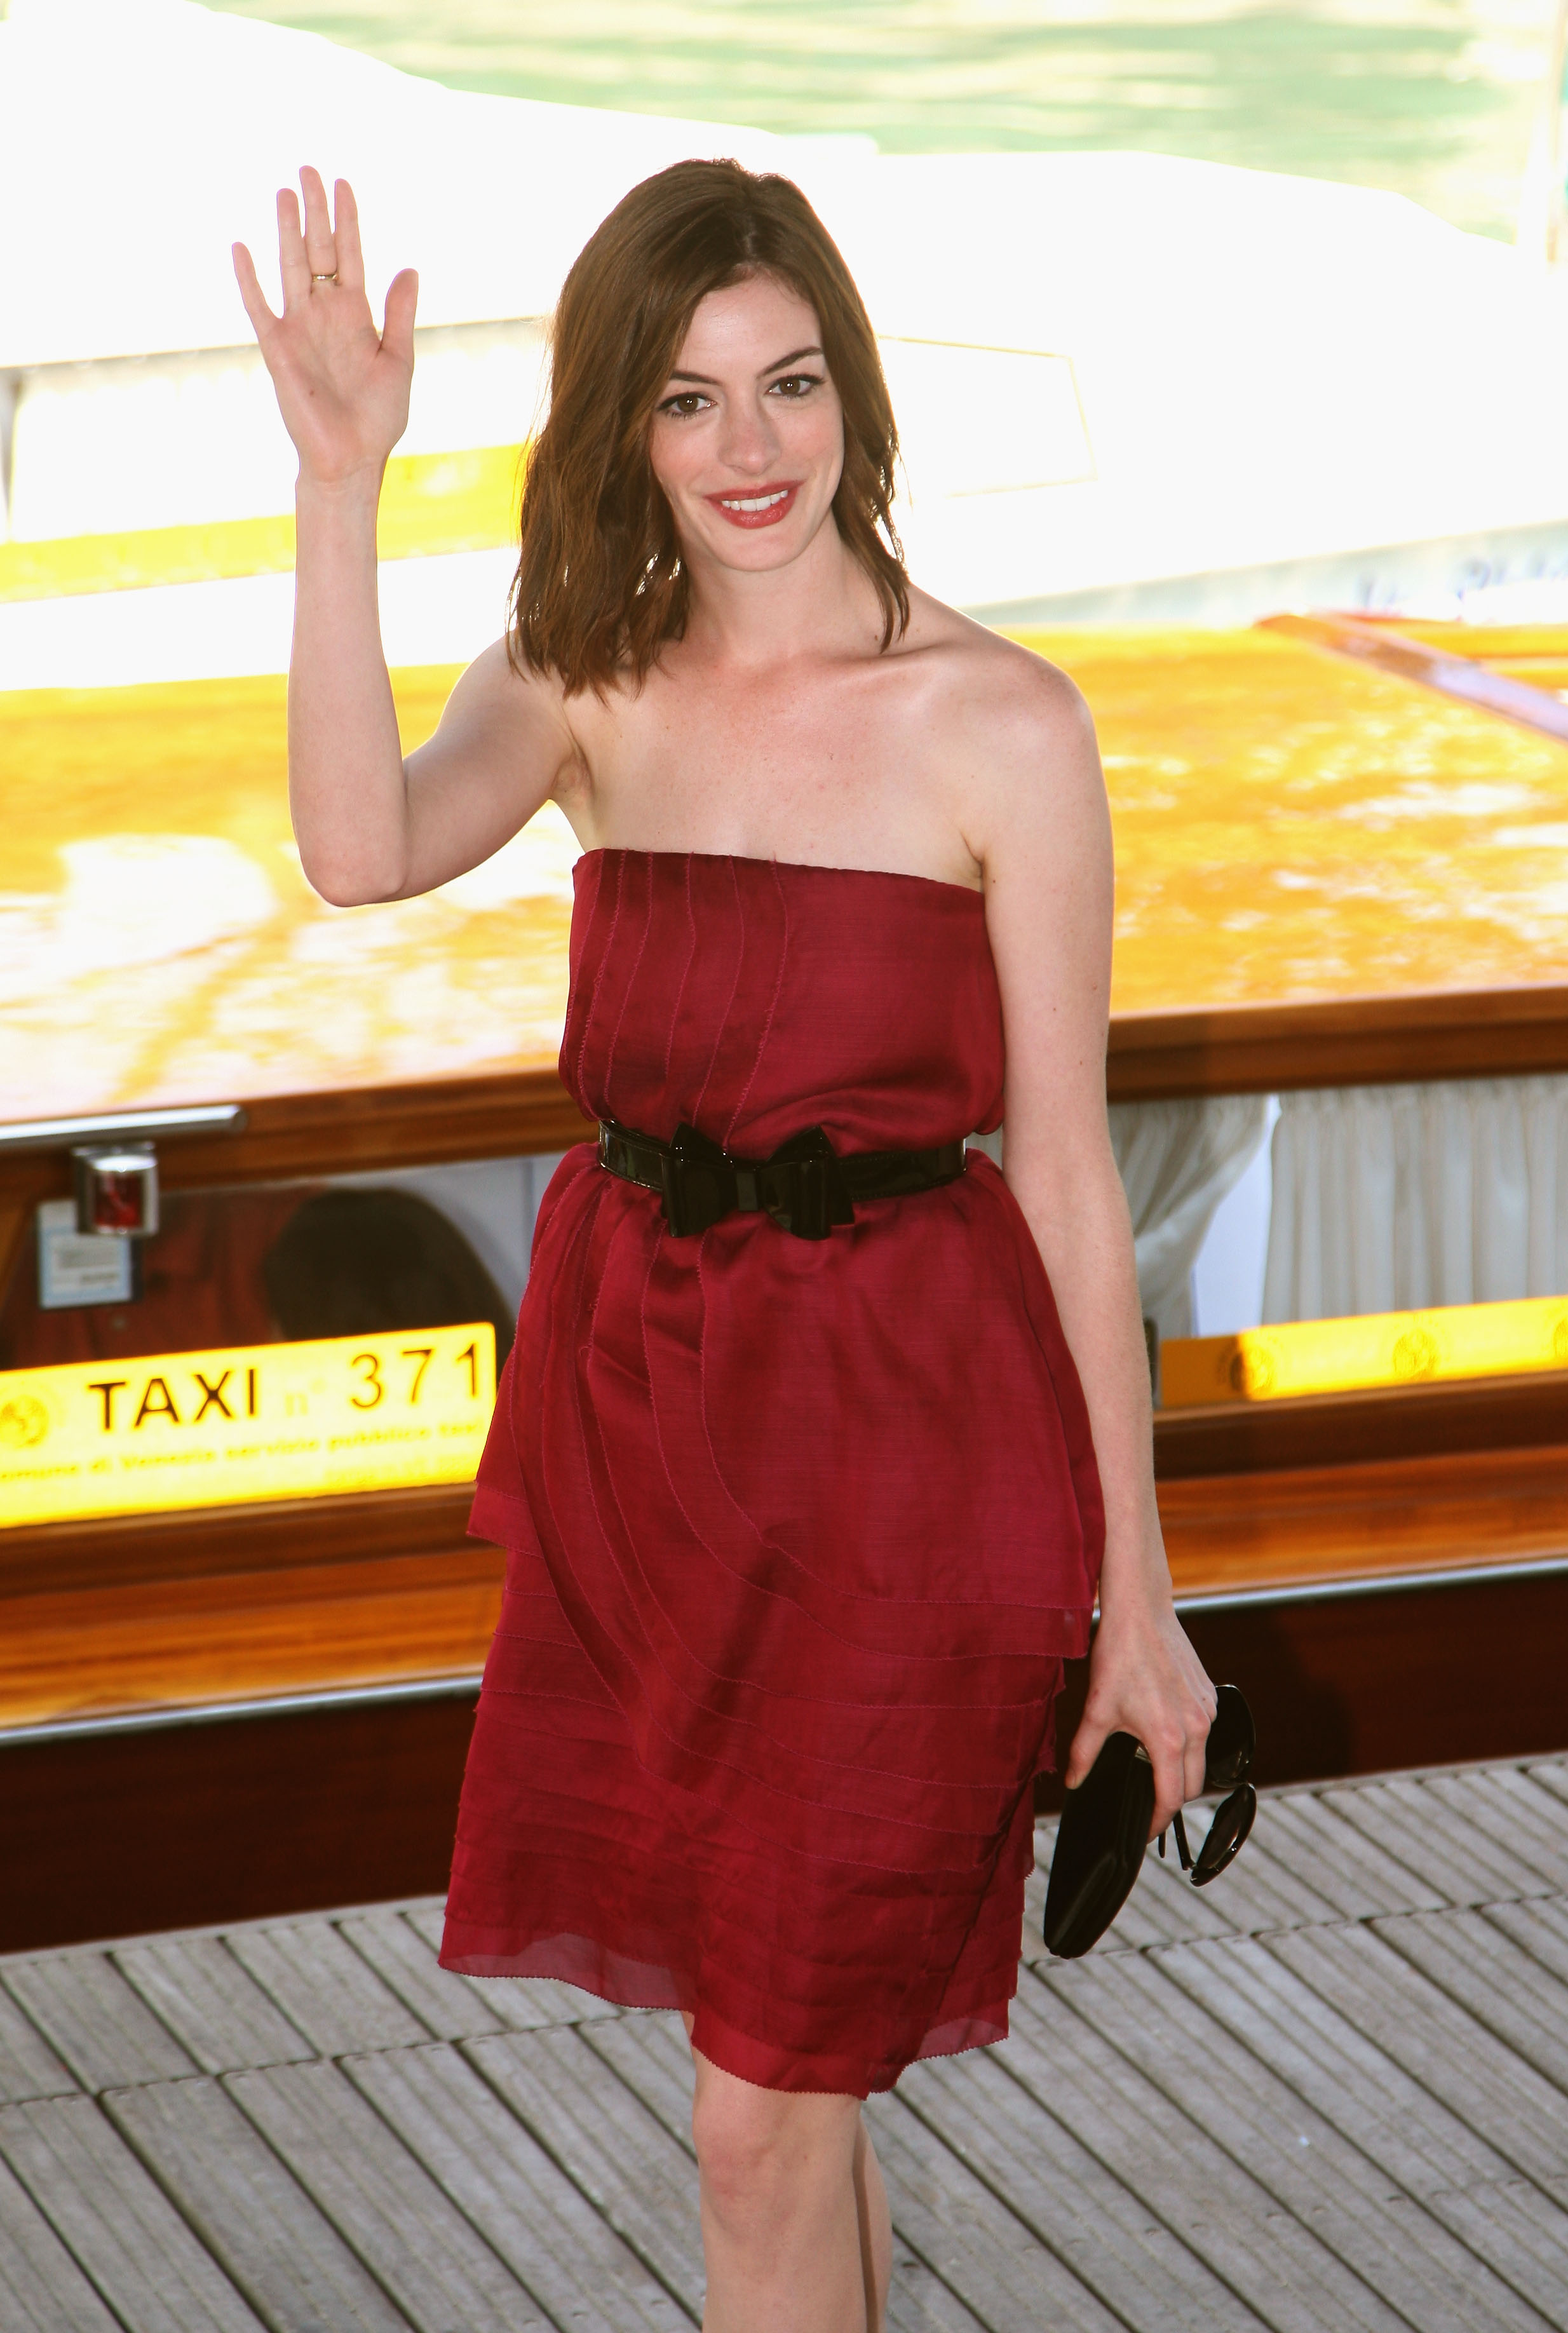 43552_Anne_Hathaway_arrives_at_the_Excelsior_Hotel_Venice-37_122_1177lo.jpg